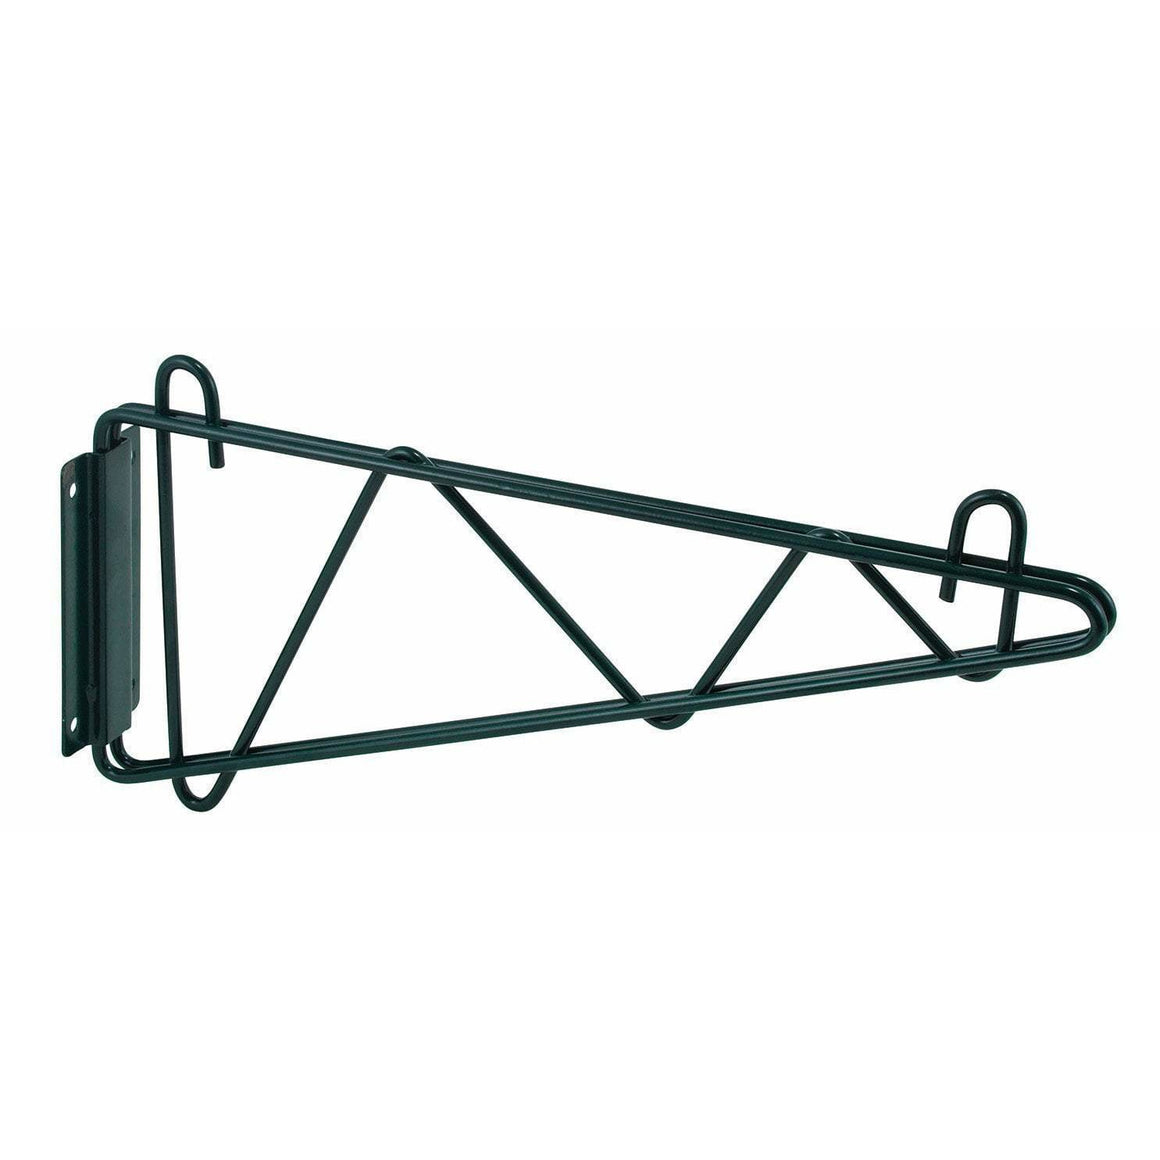 "Winco - VEXB-14 - Shelving Wall Mount Brackets, Epoxy Coated, 14""W, 1 Pair - Shelving"